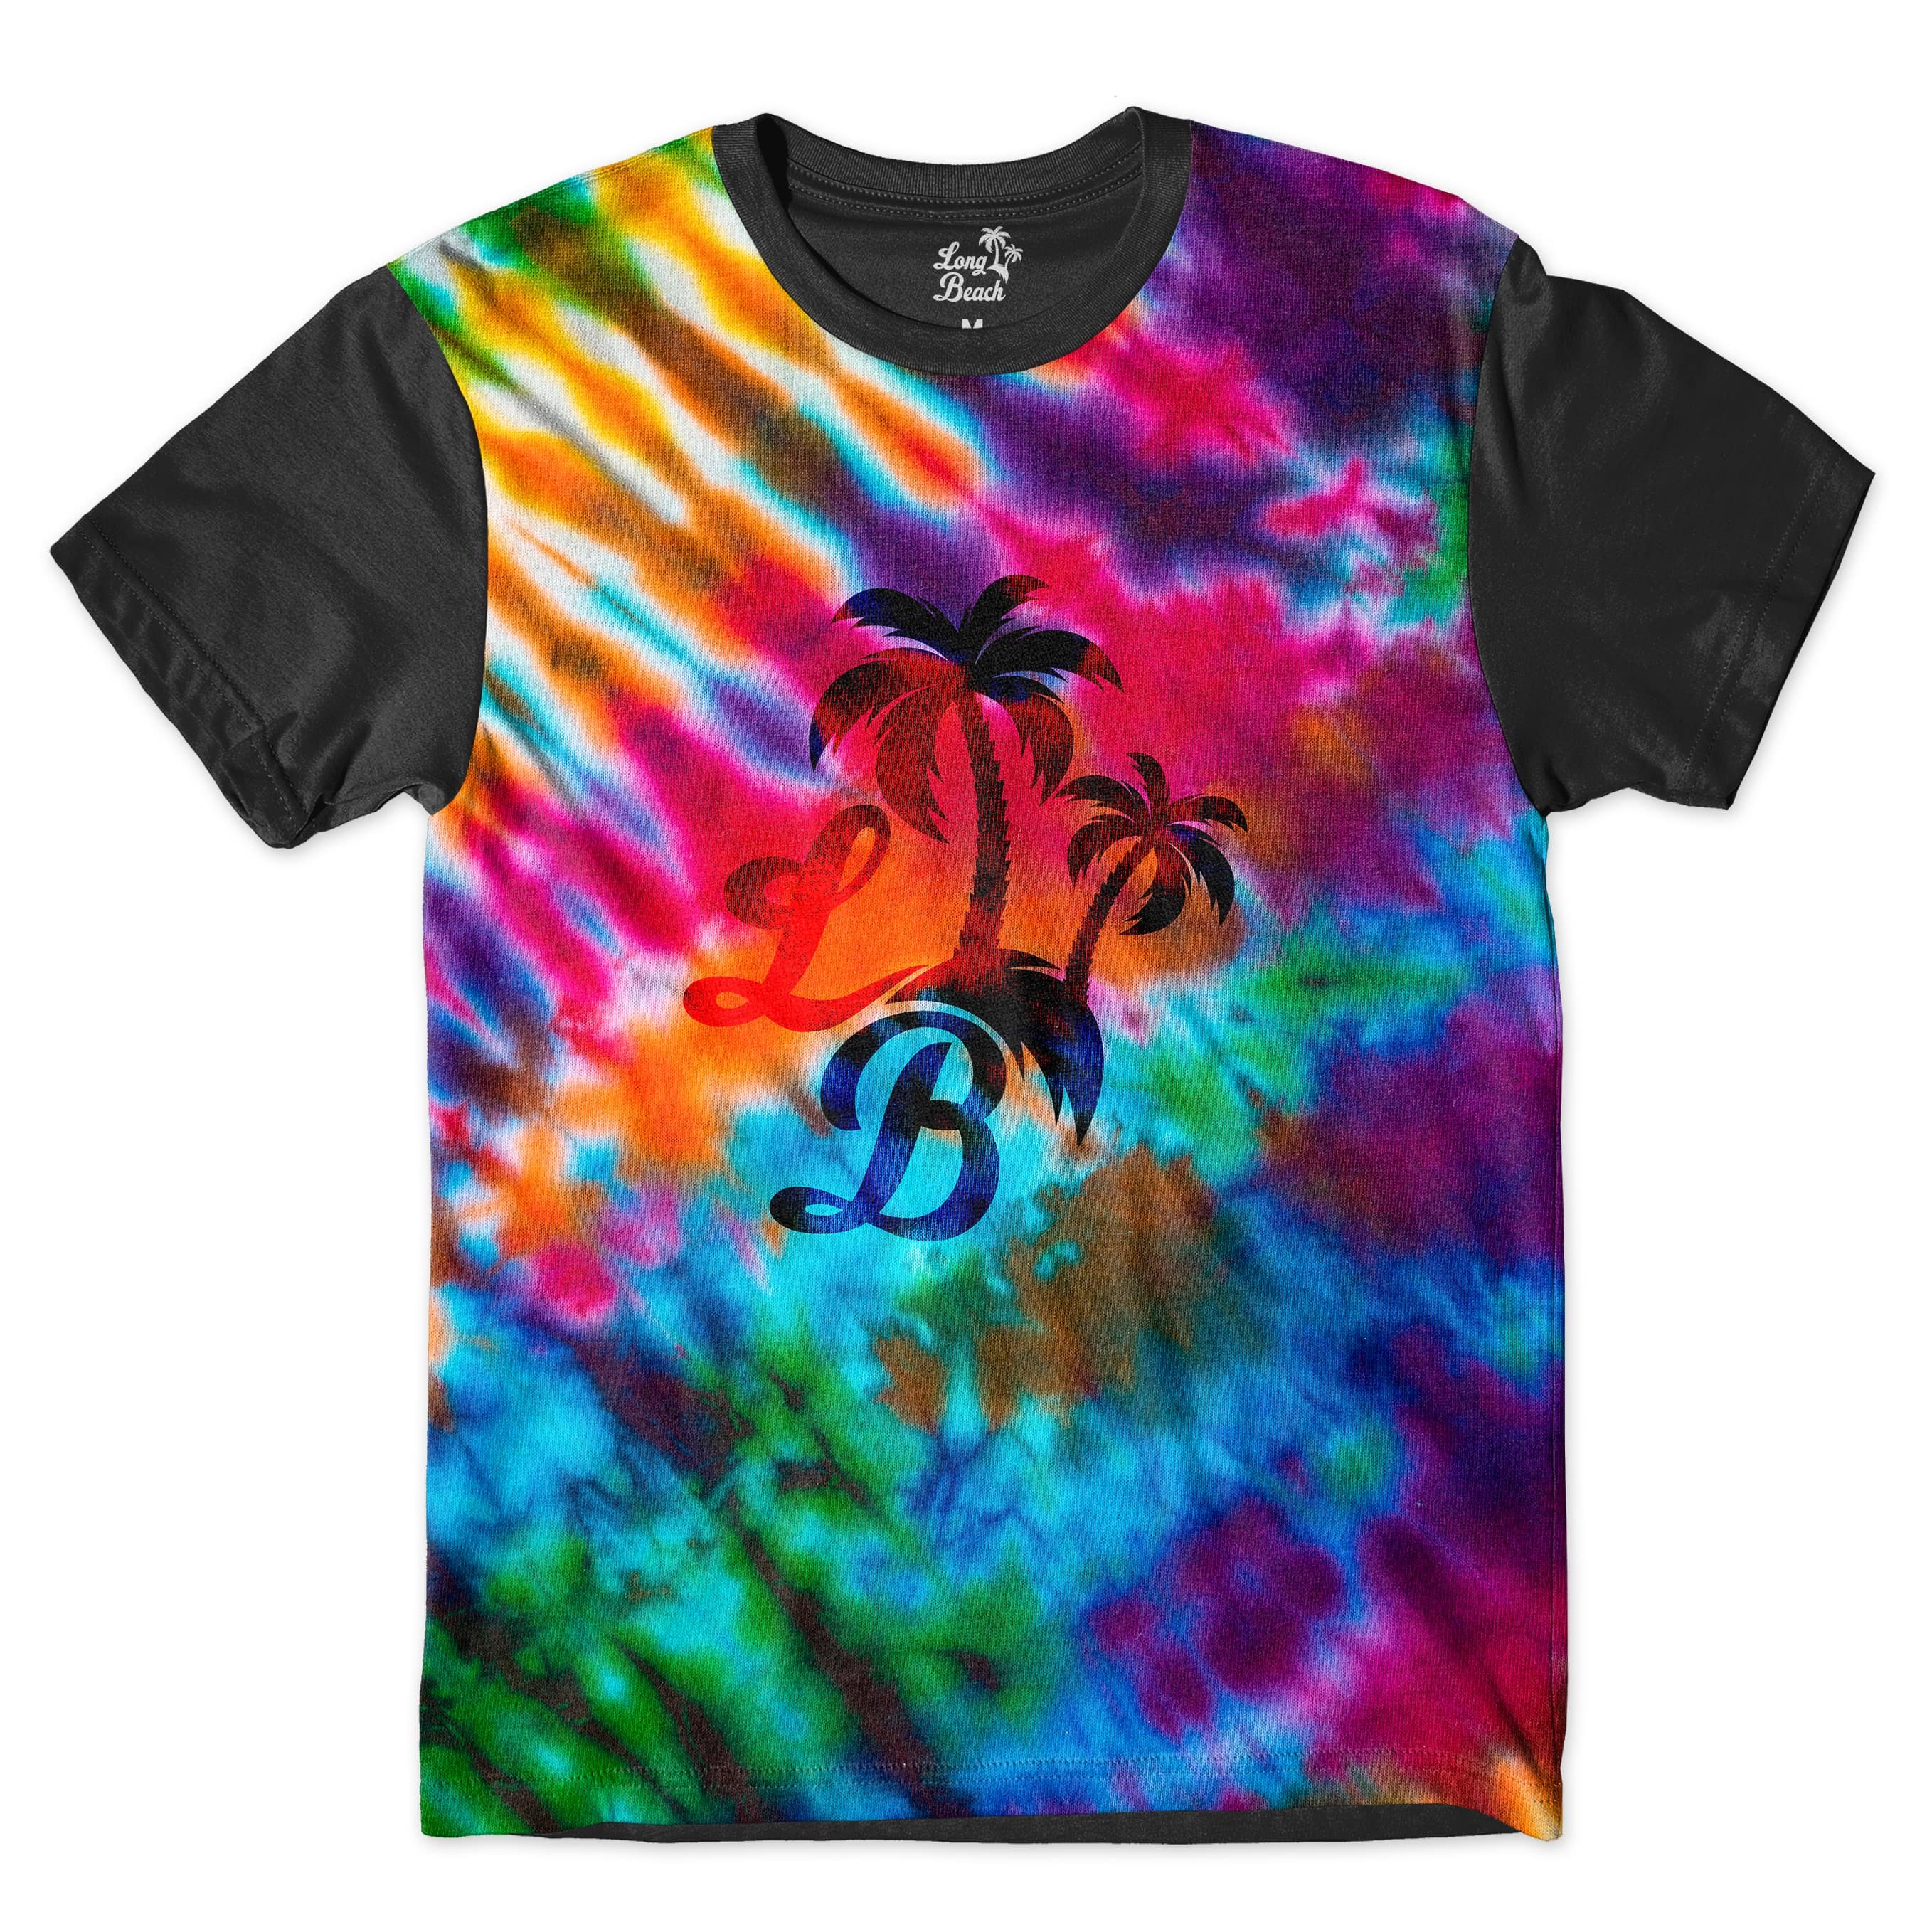 Camiseta Long Beach Psicodélica Tie Dye Full Print Colors